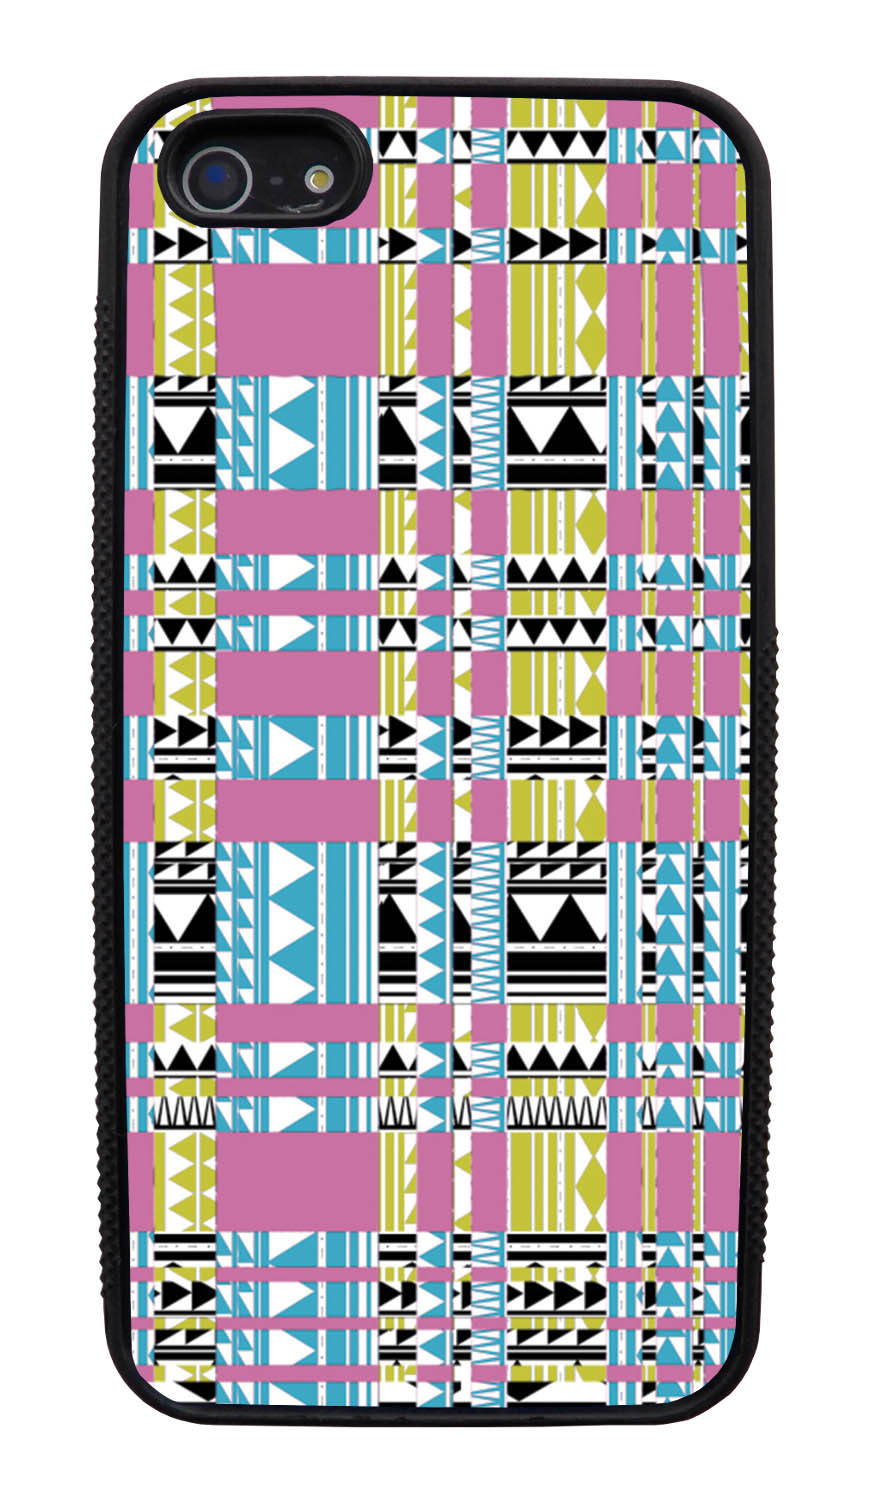 Apple iPhone 5 / 5S Aztec Case - Glitched Inverse - Geometric - Black Slim Rubber Case